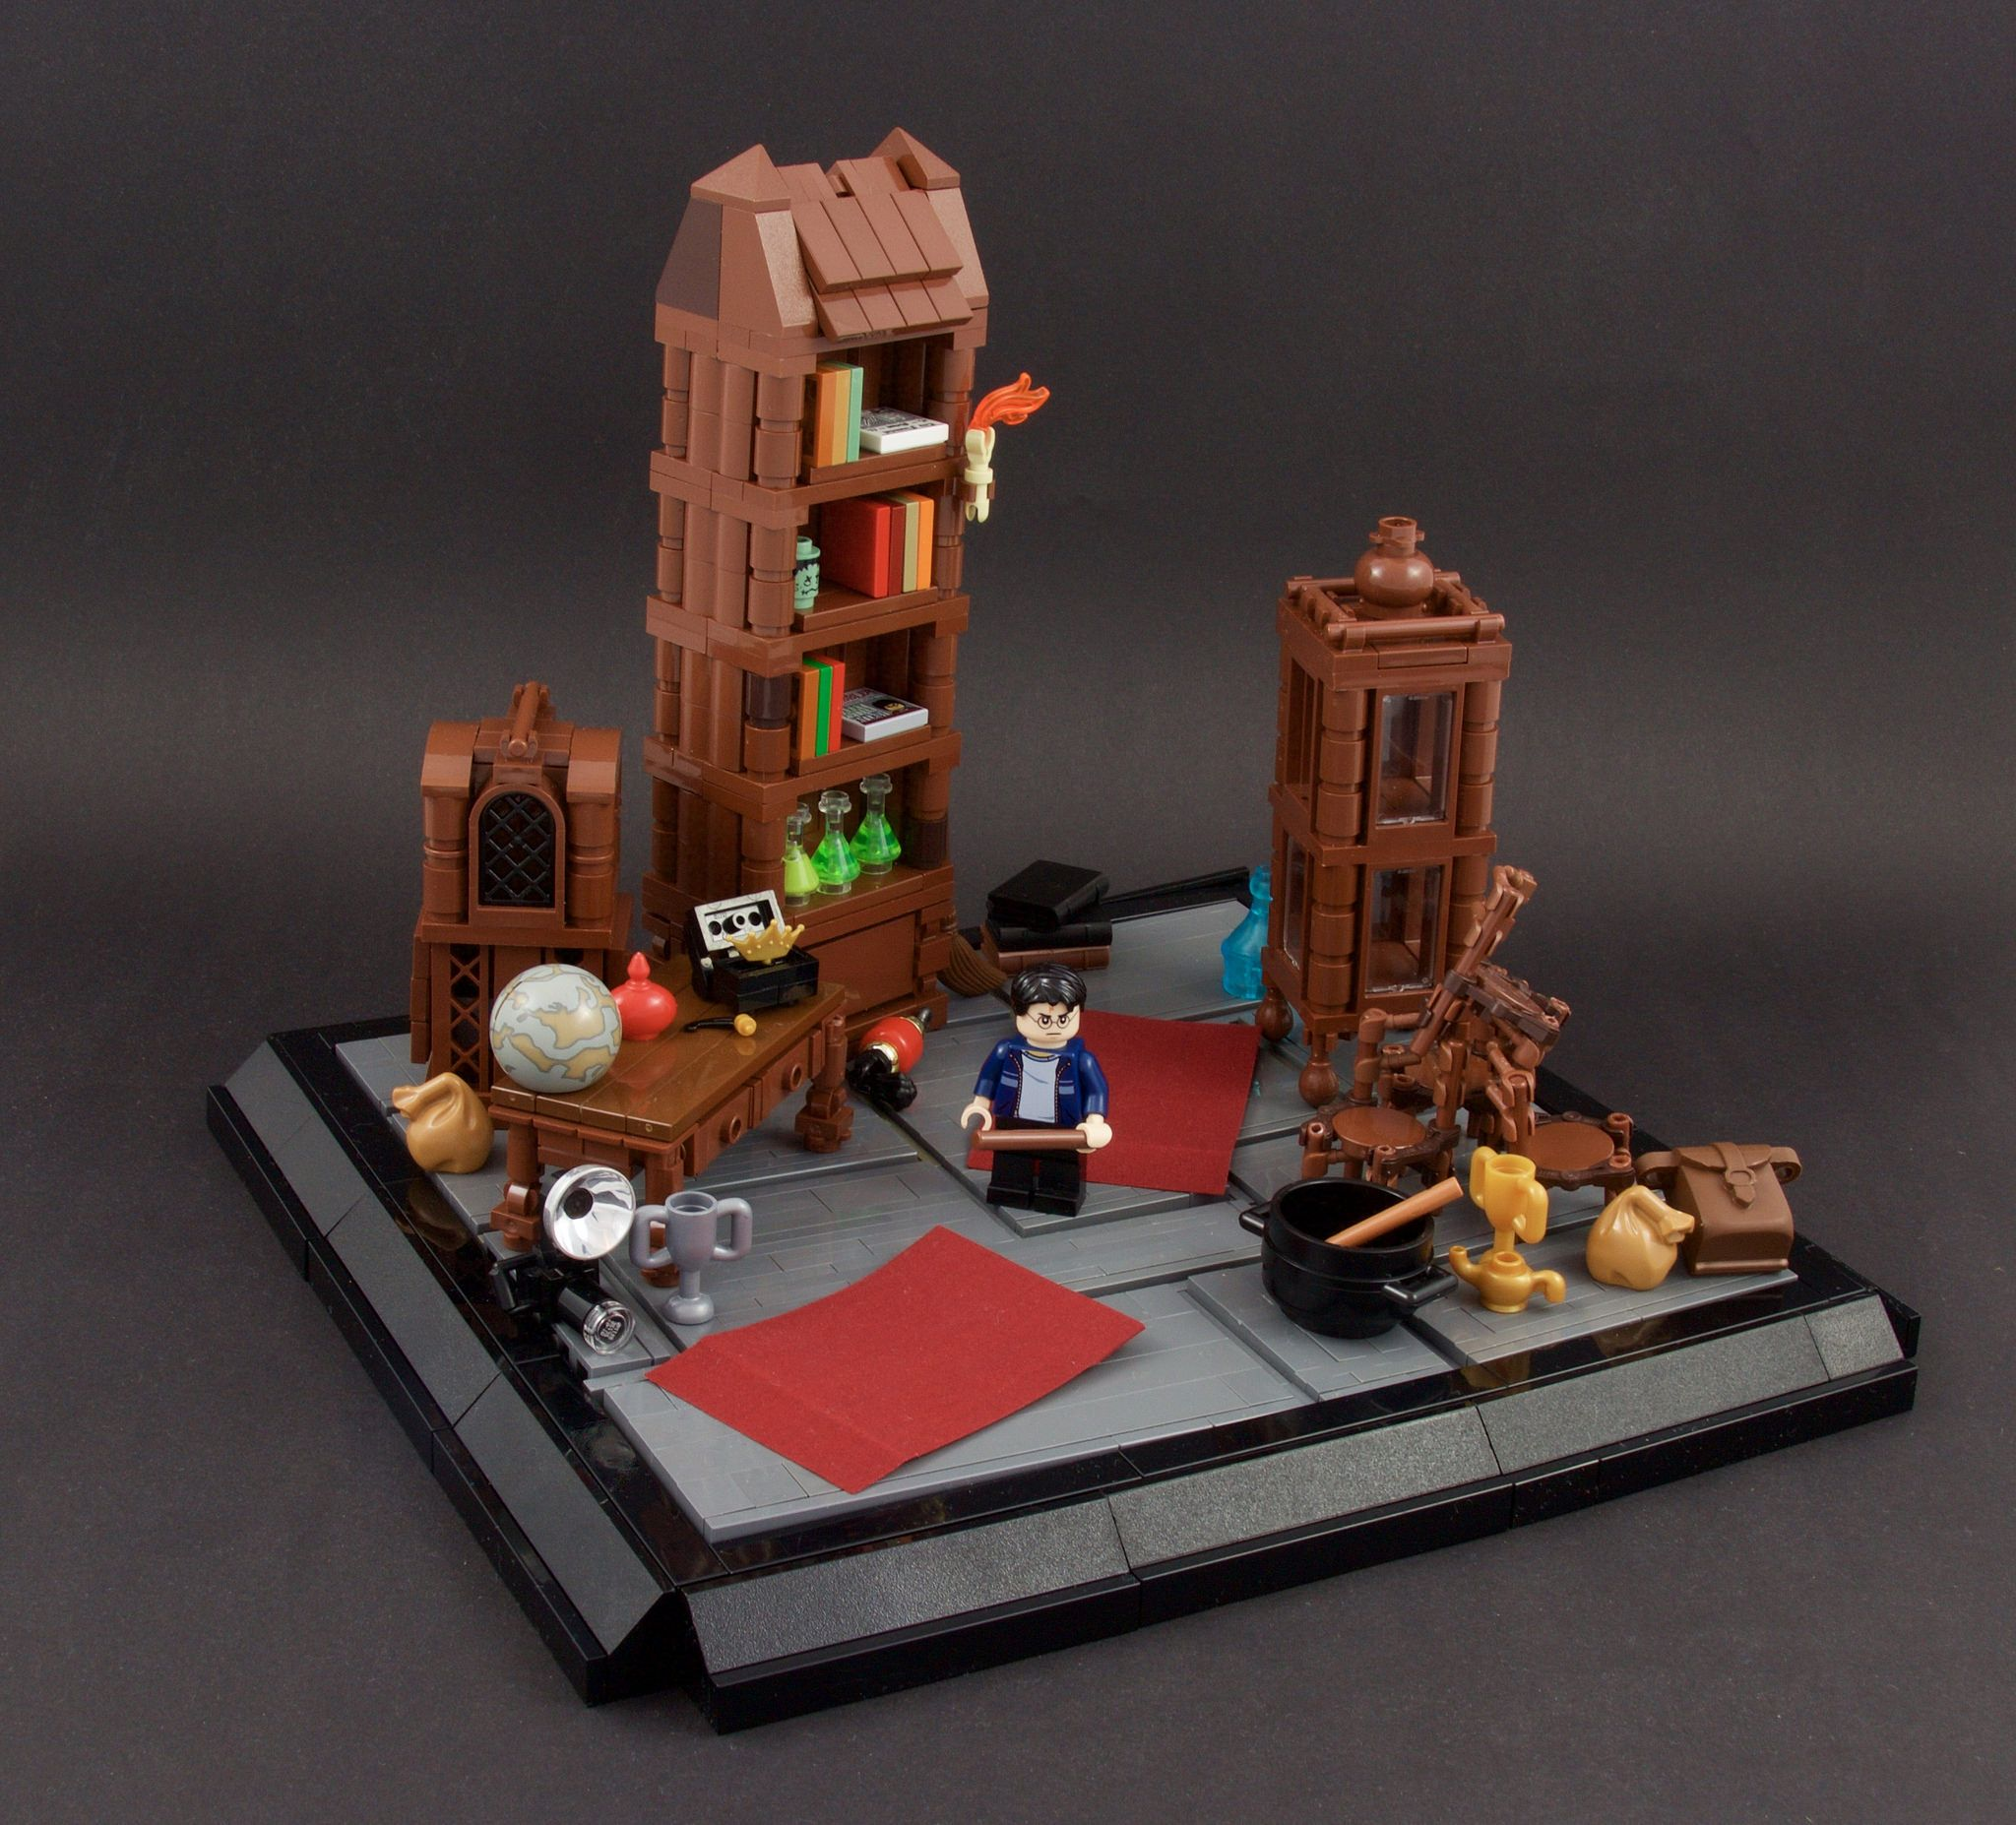 Harry Potter Room Of Requirement Lego Harry Potter Moc Harry Potter Lego Sets Lego Hogwarts